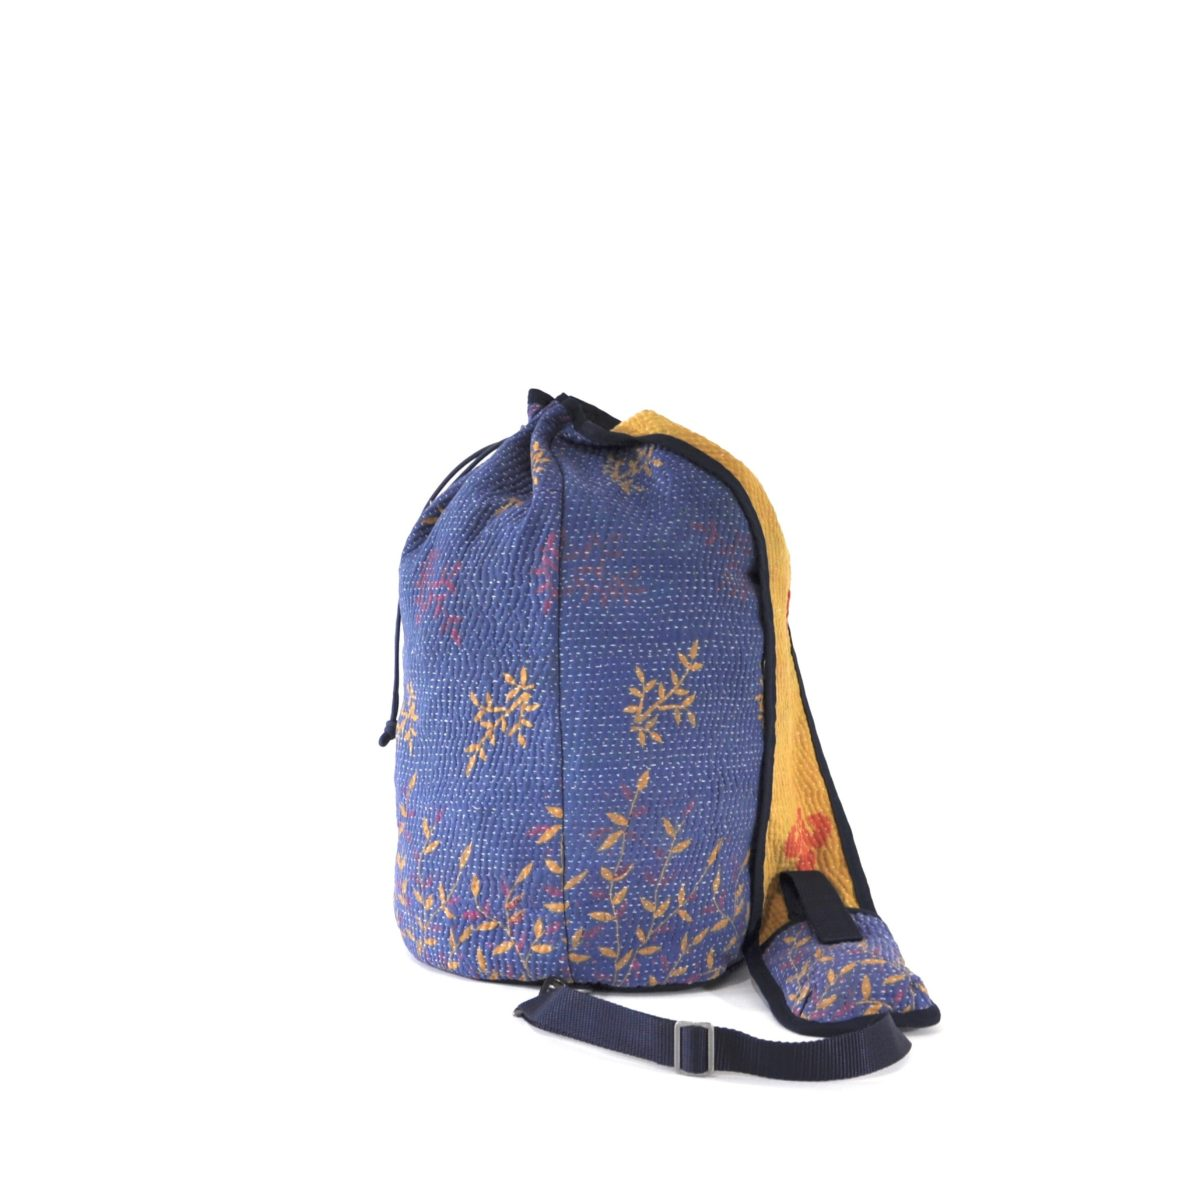 YESNESS Periwinkle Blue w: Yellow & Pink Leaves 6